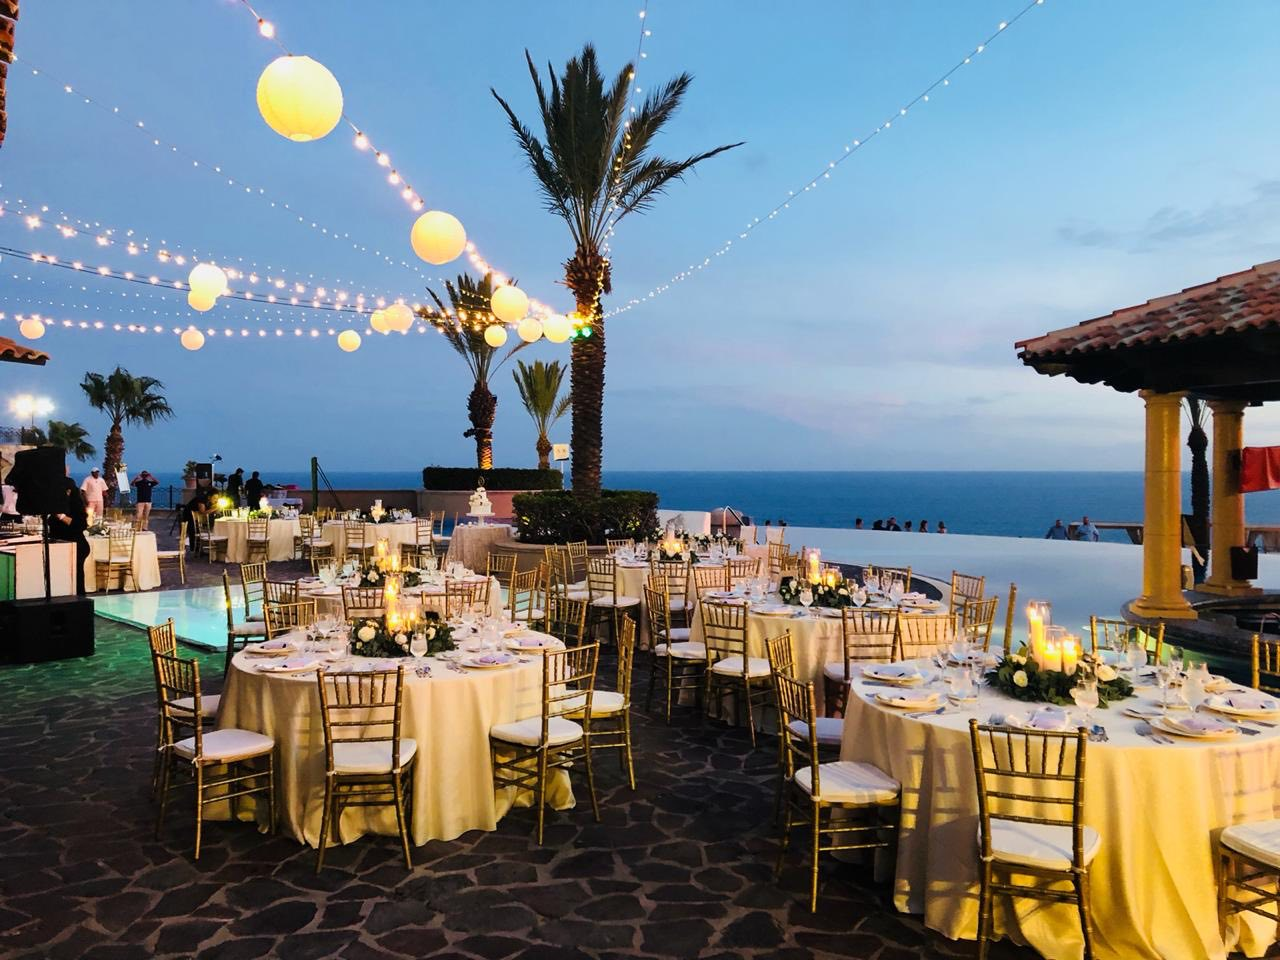 night view of wedding reception that overlooks ocean